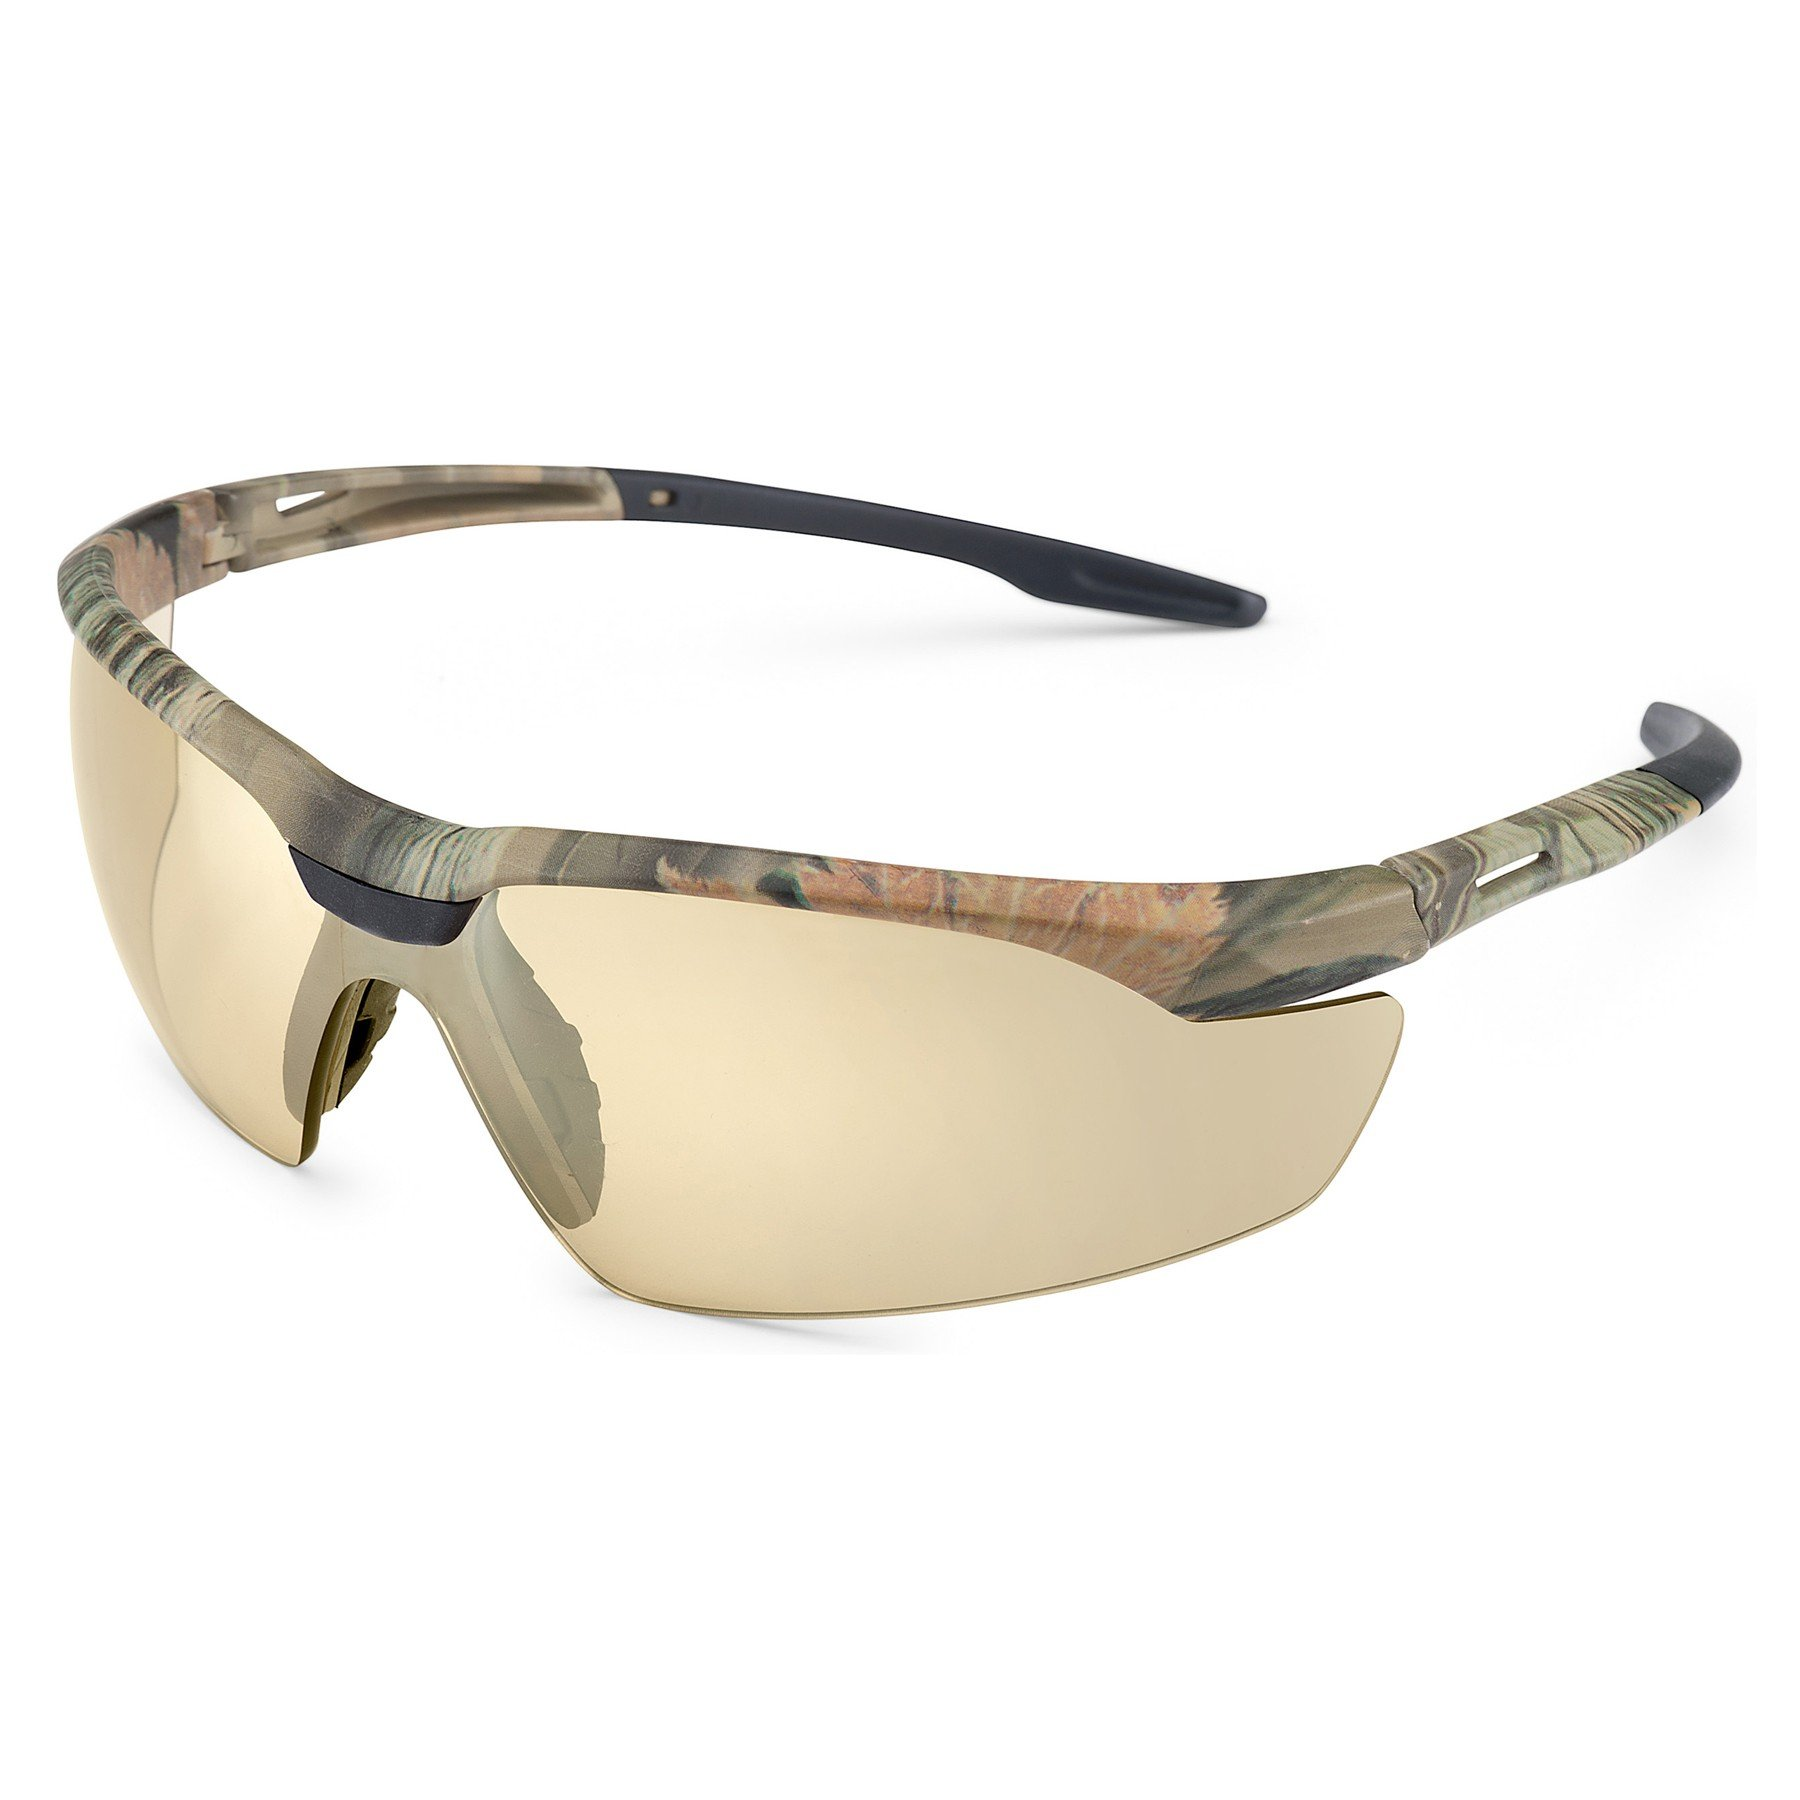 Gateway Safety Camo Conqueror Glasses in Bronze Anti-Fog Lens Color (6/Pack) - OSSG-SFTEYSG1000024593 -BRONZE by Miller Supply Inc